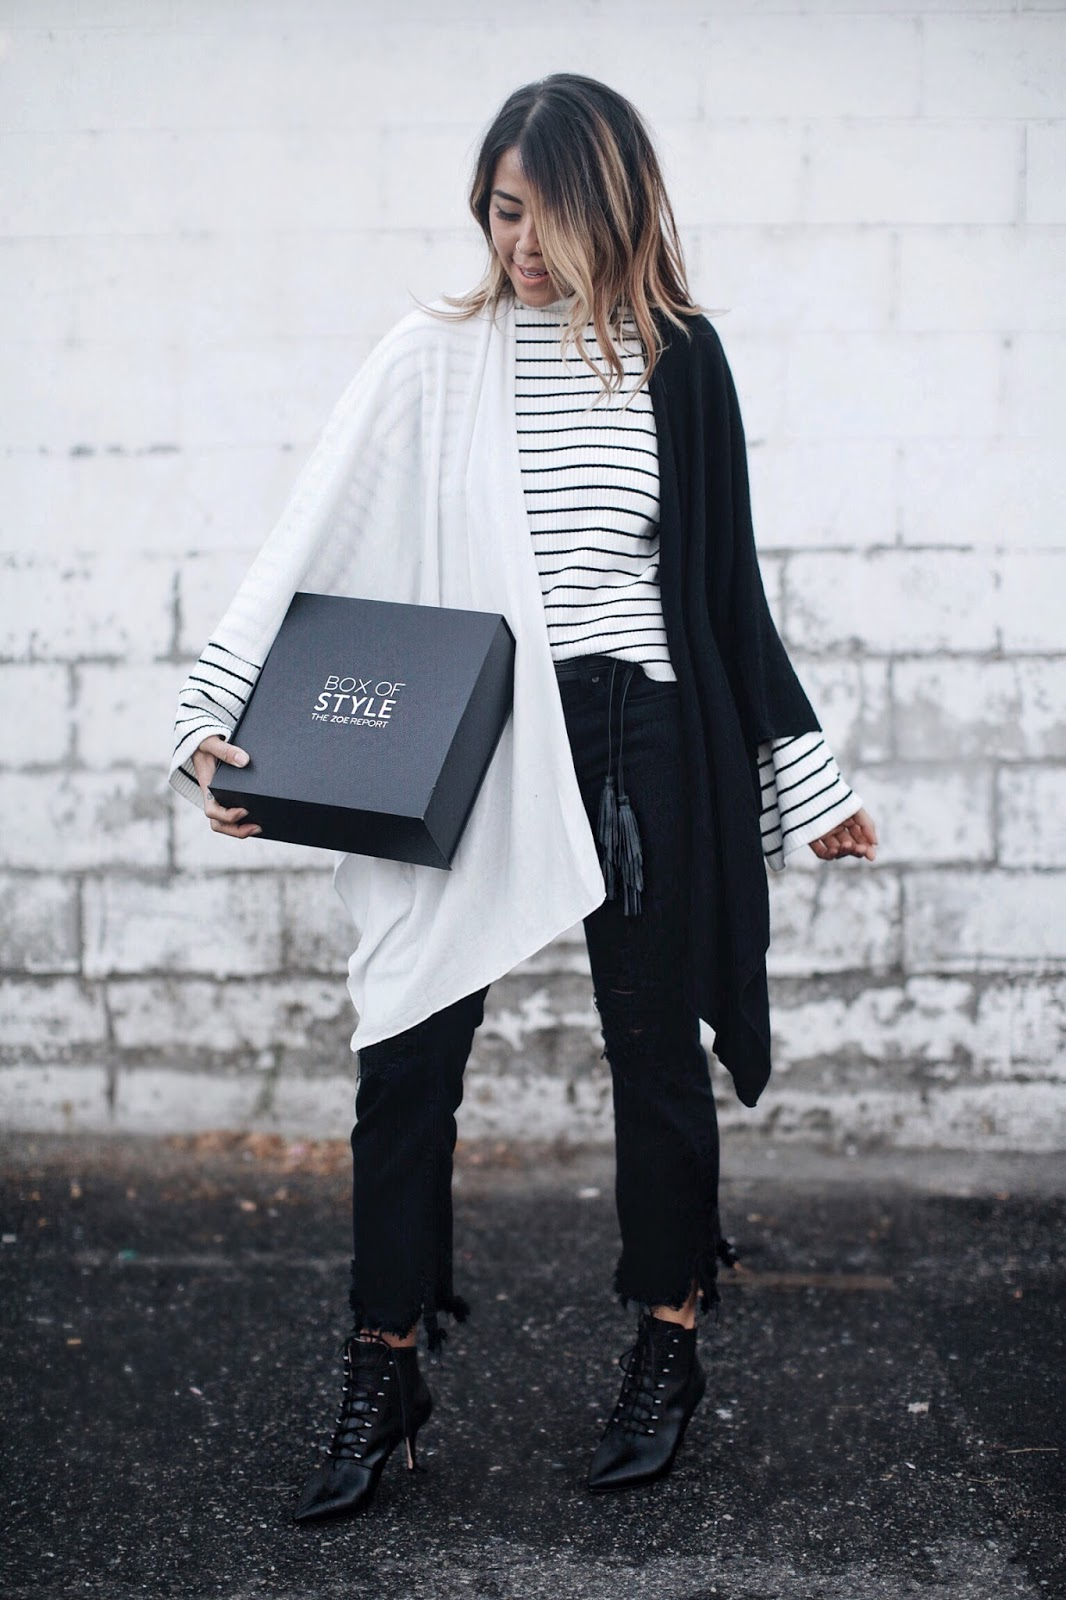 The Zoe Report Box of Style Review